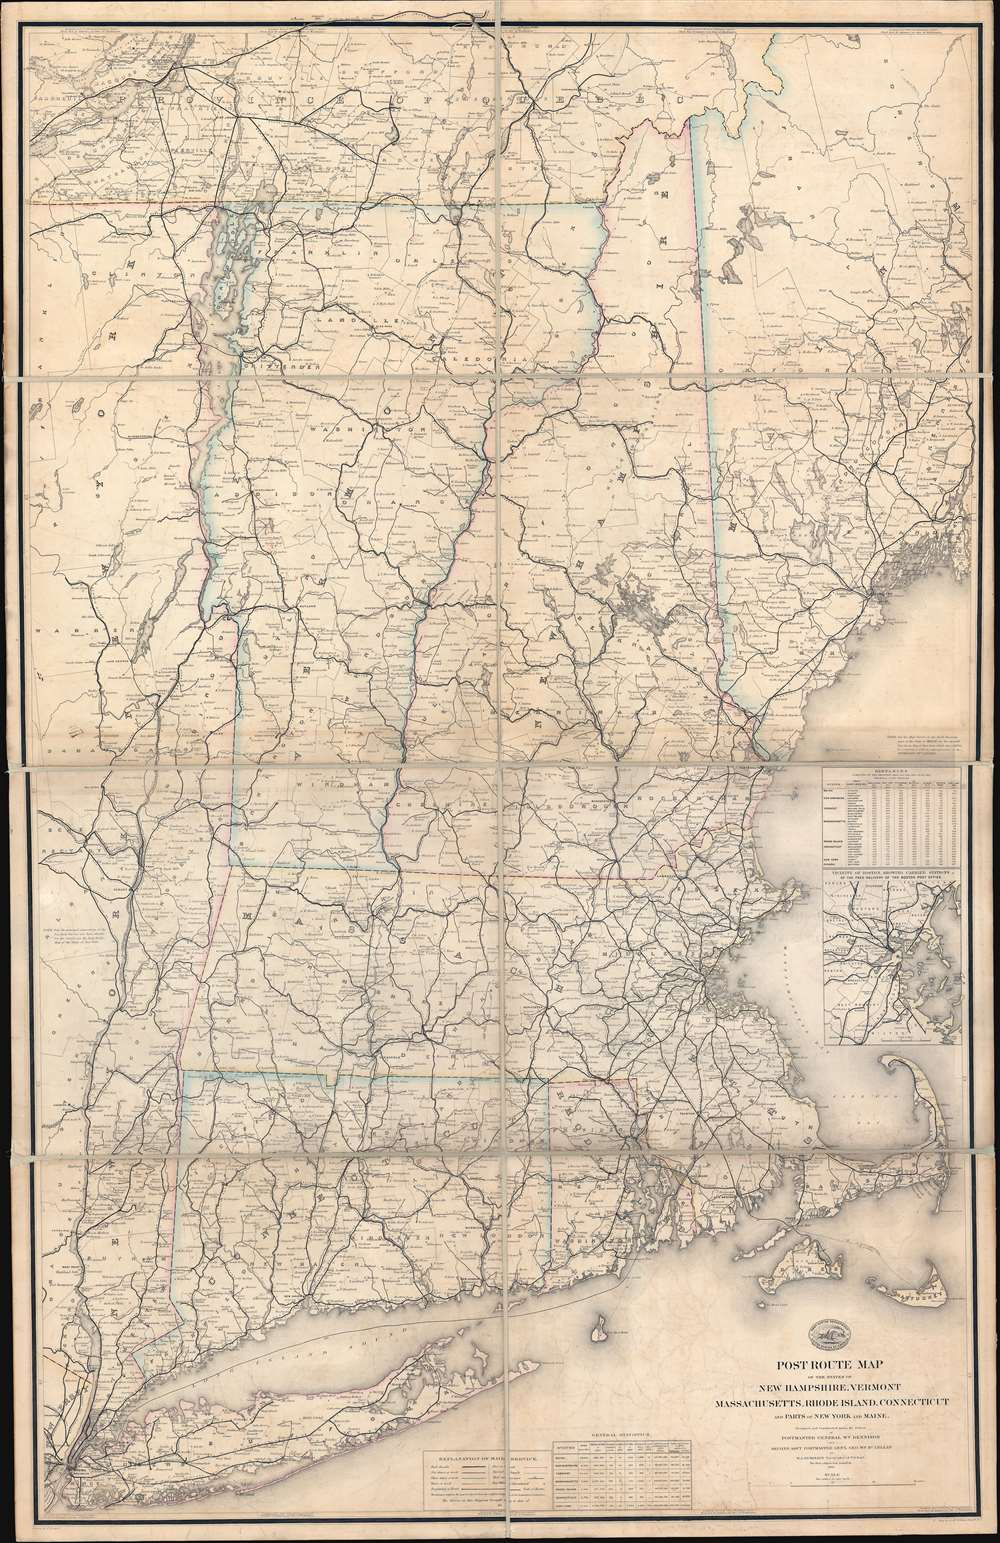 1878 Post Office Dept. Map Wall Map of New England w/ Gold mines?